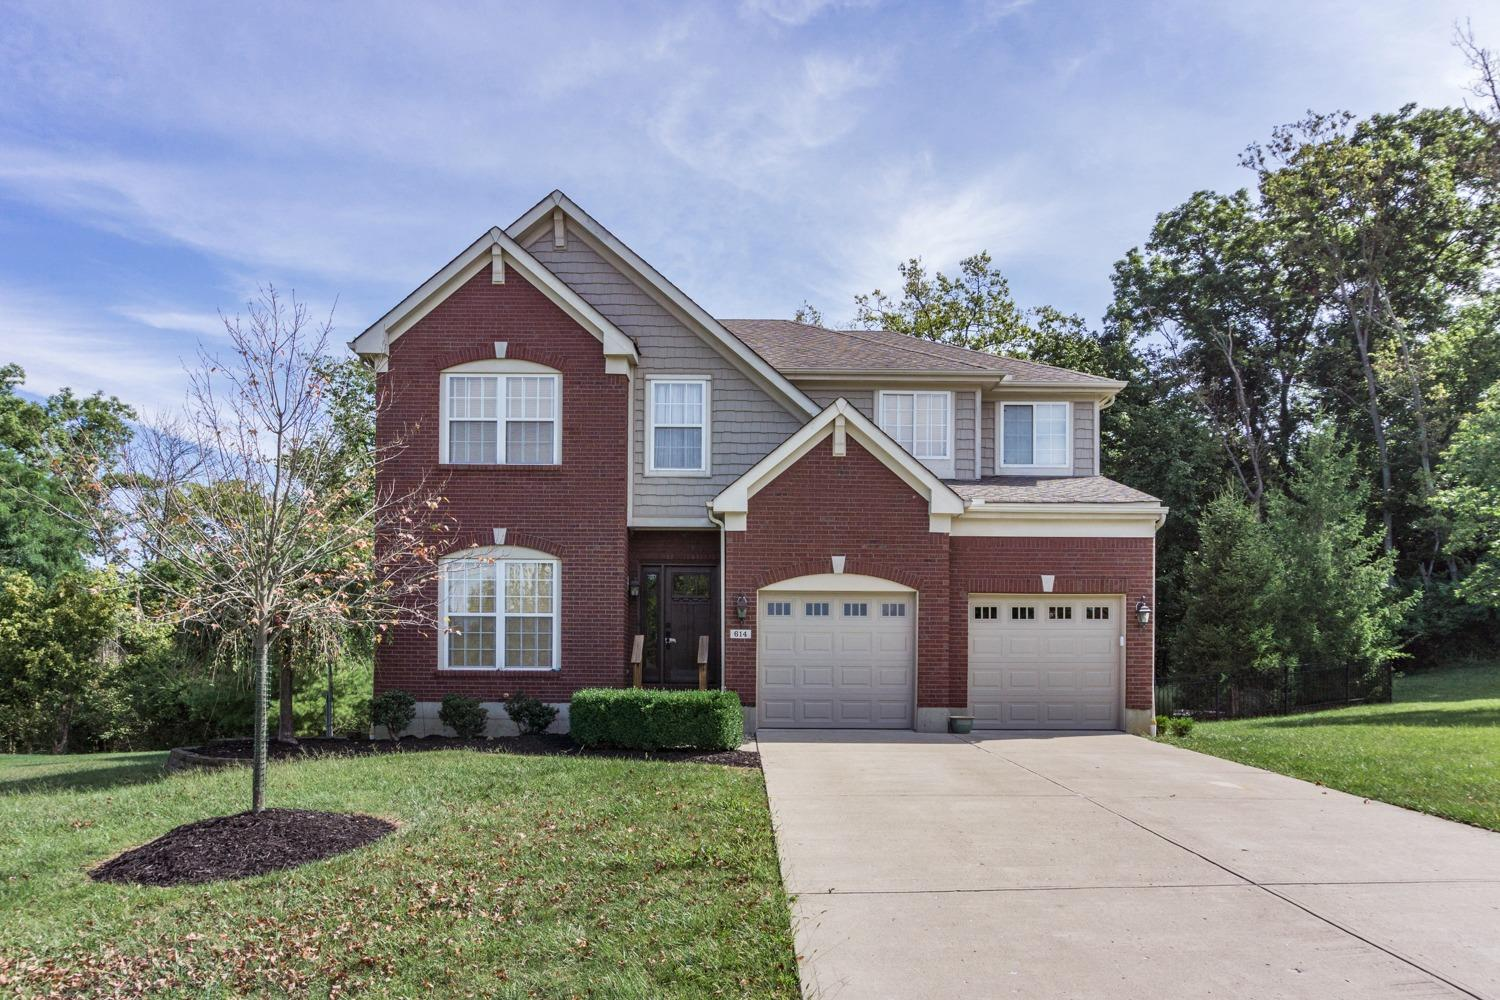 614 Coleberry Ct Cleves, OH